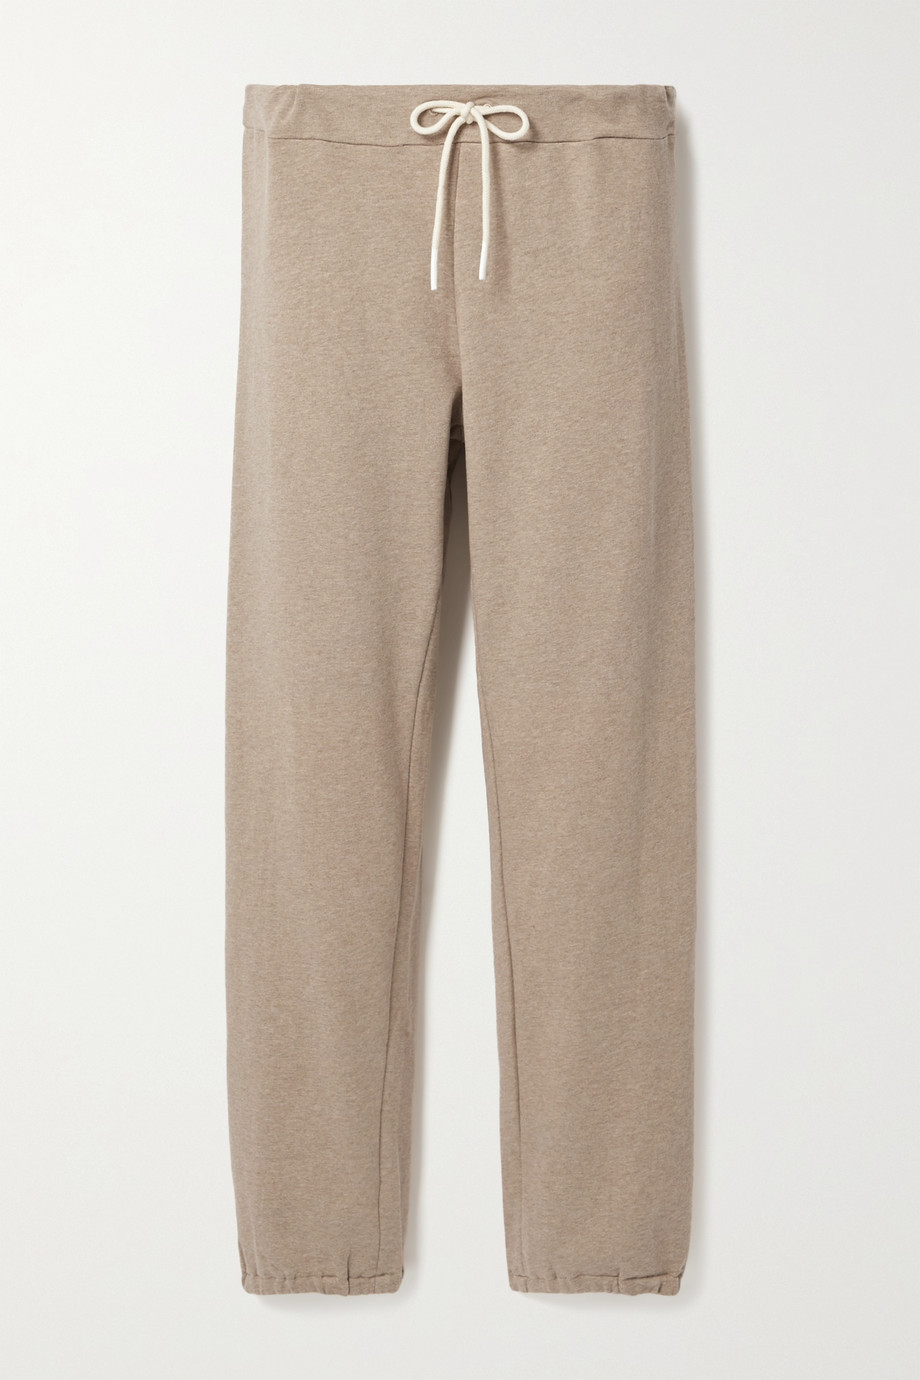 TORY SPORT French cotton-blend terry track pants